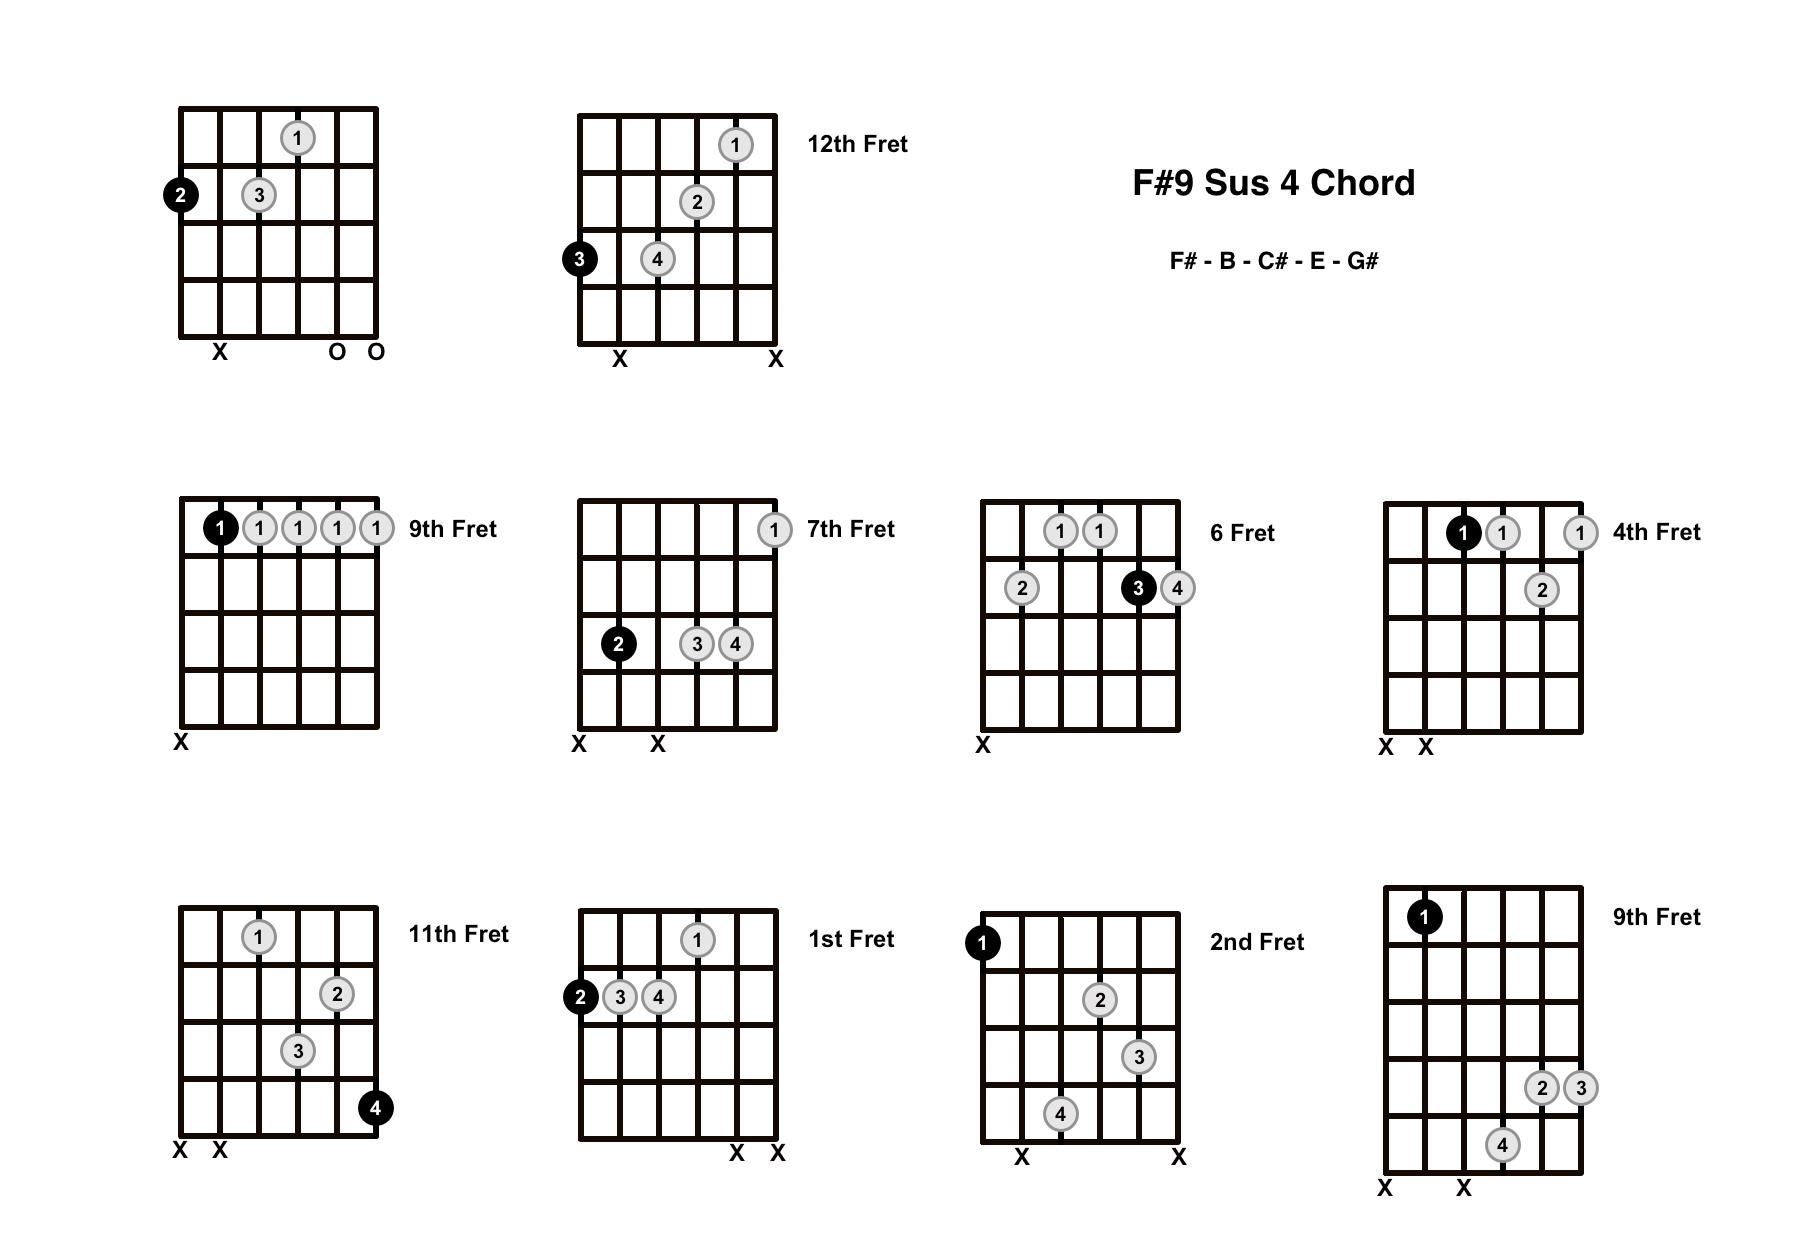 F#9 Sus 4 Chord On The Guitar (F Sharp 9 Suspended 4, E/F#) – Diagrams, Finger Positions and Theory